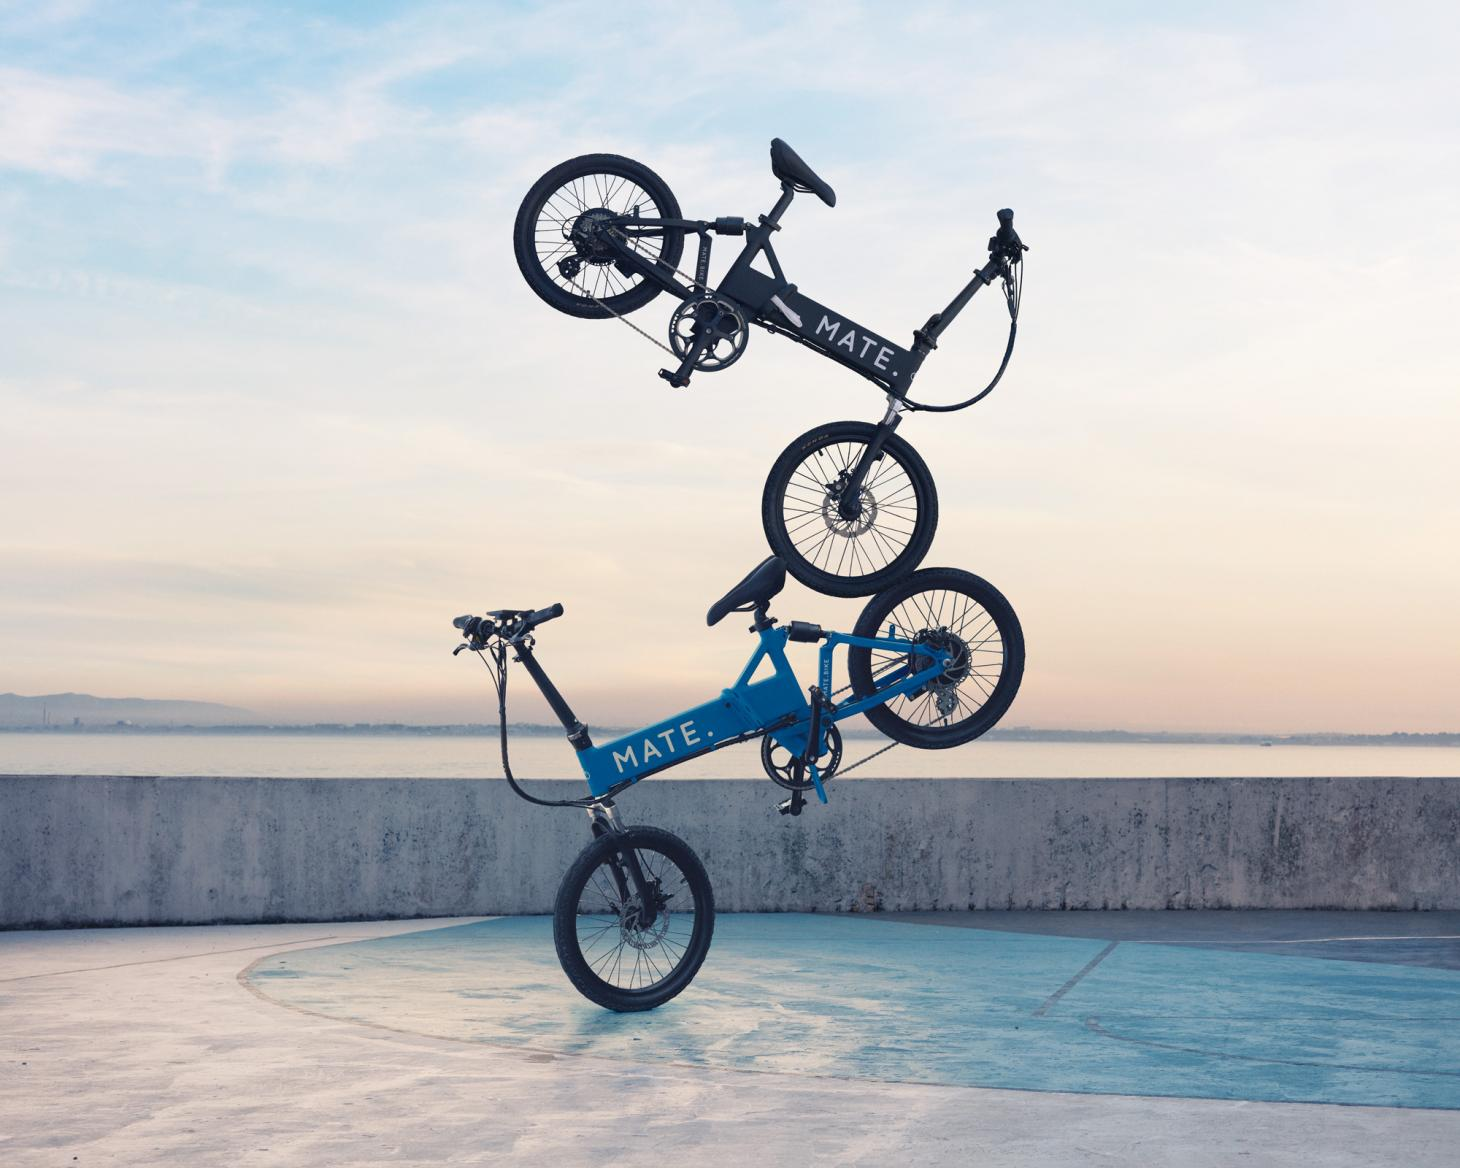 MATE's range of E-Bikes are colourful, contemporary and powerful